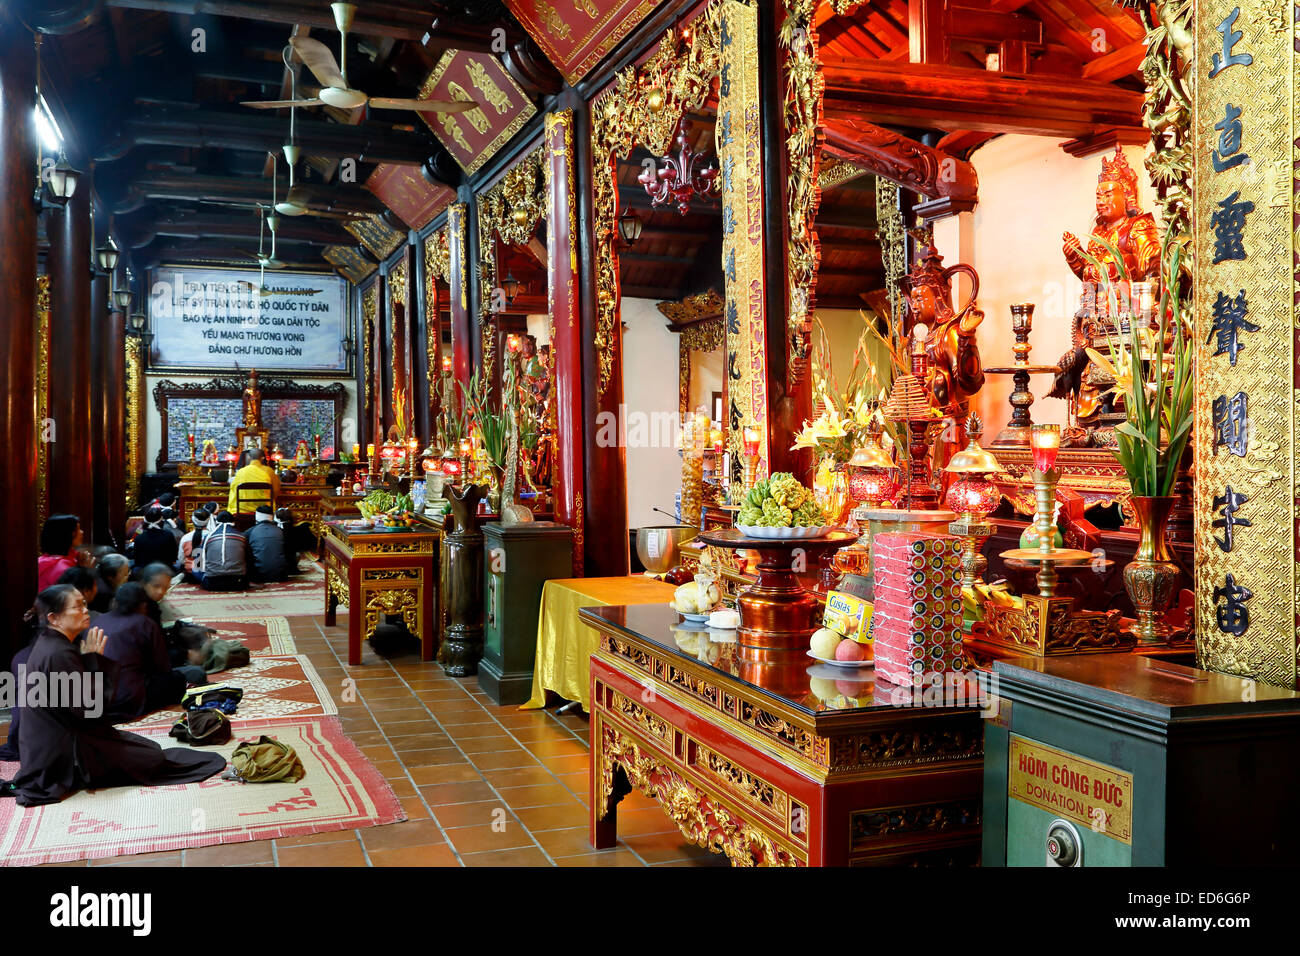 Worshipers and shrines, Tran Quoc Pagoda, Hanoi, Vietnam - Stock Image